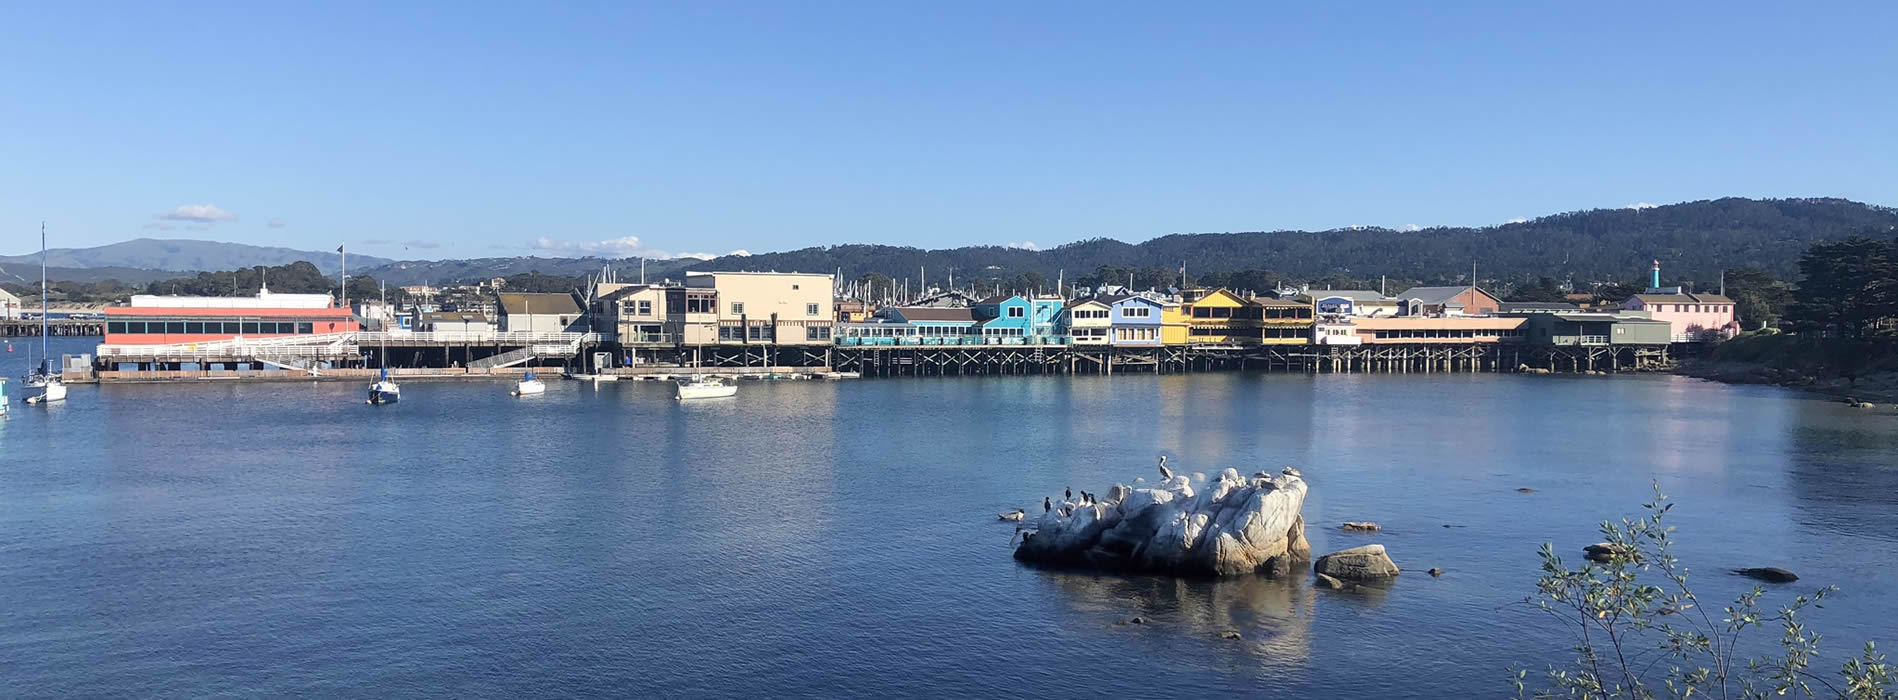 the monterey wharf with colorful shops and restaurants